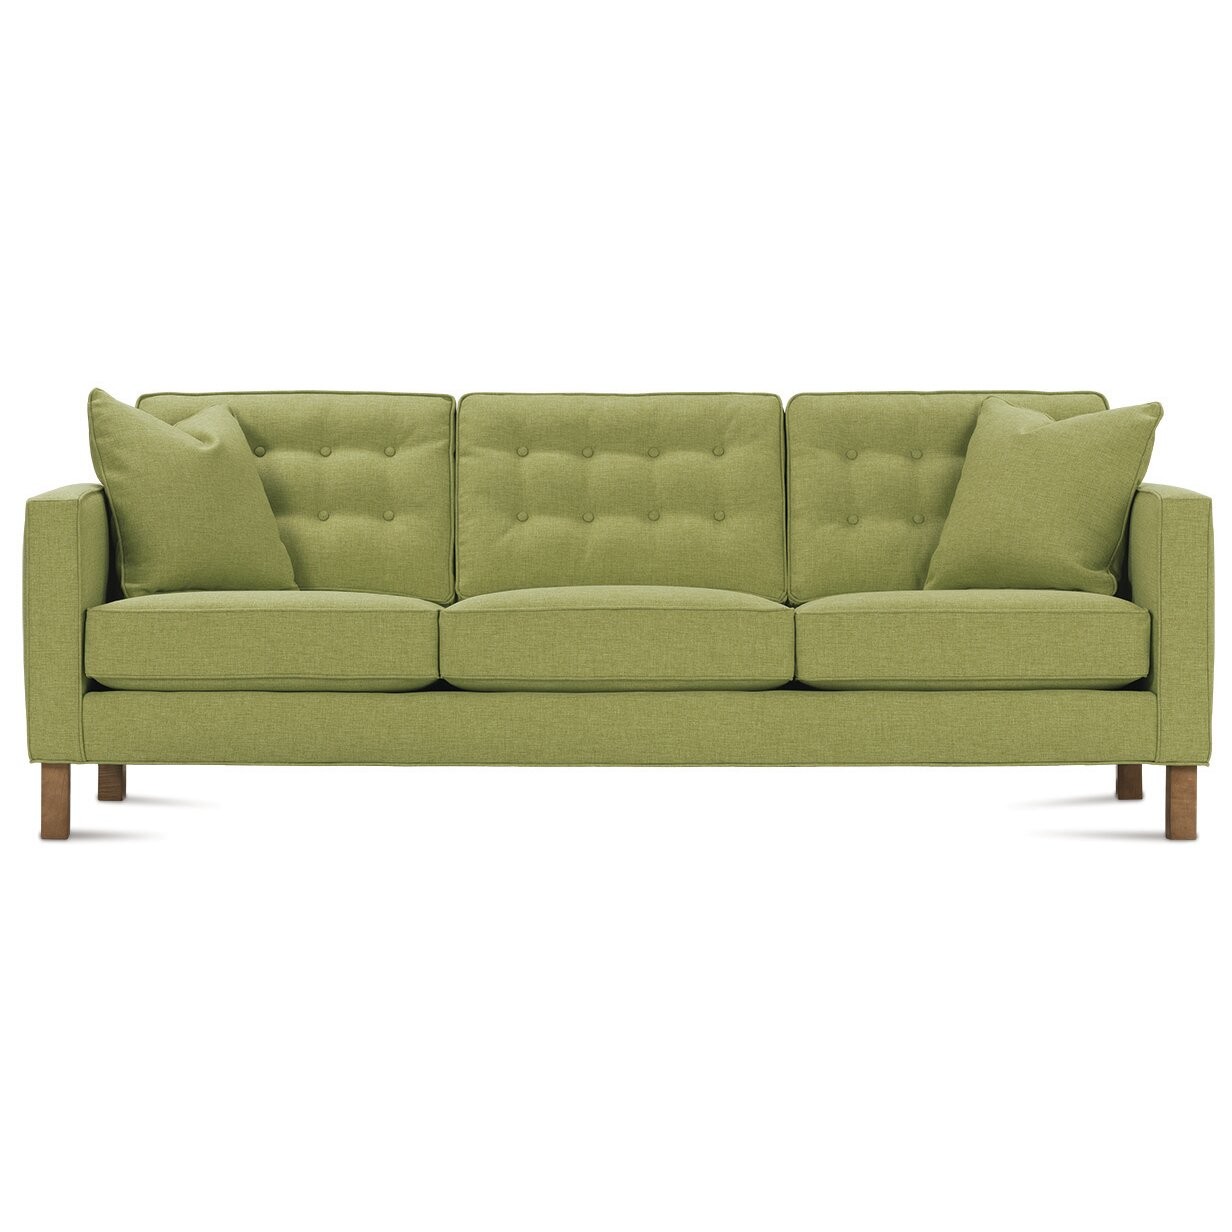 Rowe Furniture Sofa 187 Rowe Furniture Sofa Wayfair Www  : Rowe Furniture Abbott Sofa from www.vintiqueshomedecor.com size 1232 x 1232 jpeg 148kB